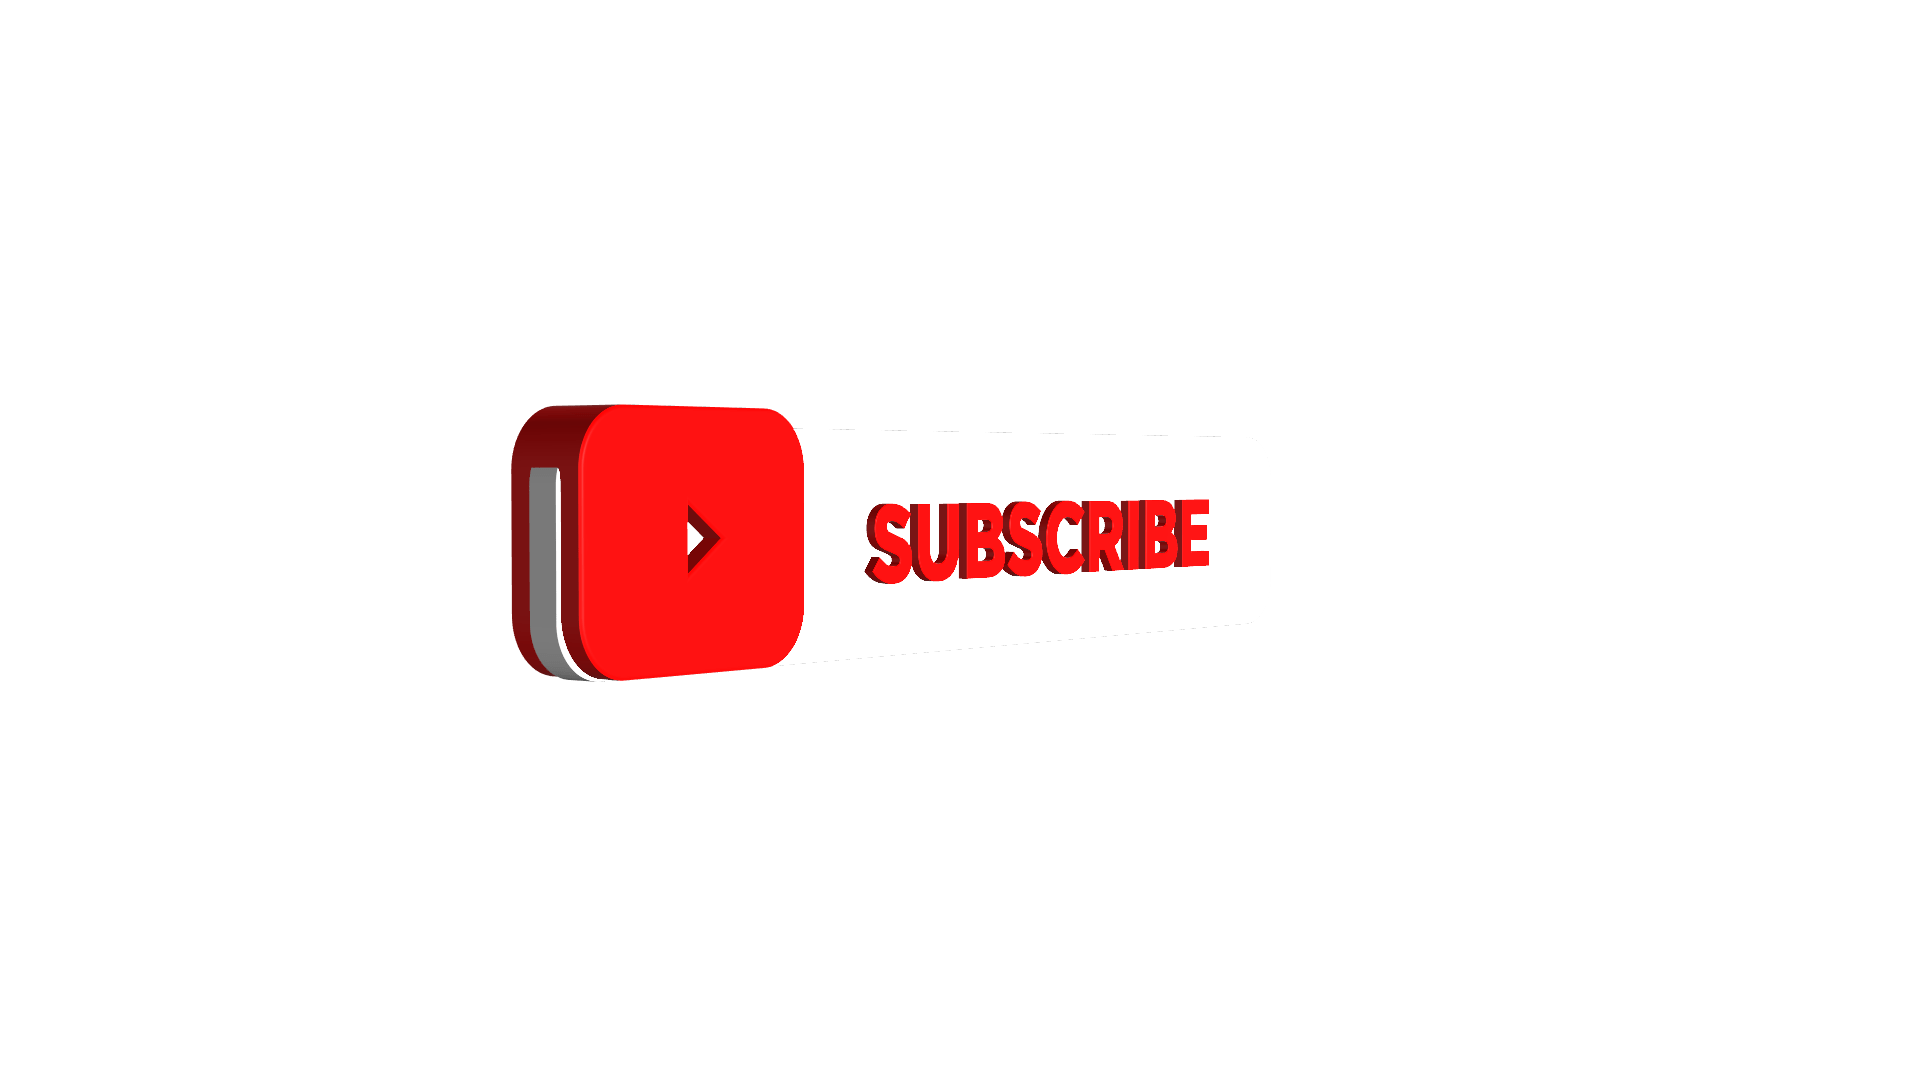 Subscribe my youtube channel png.